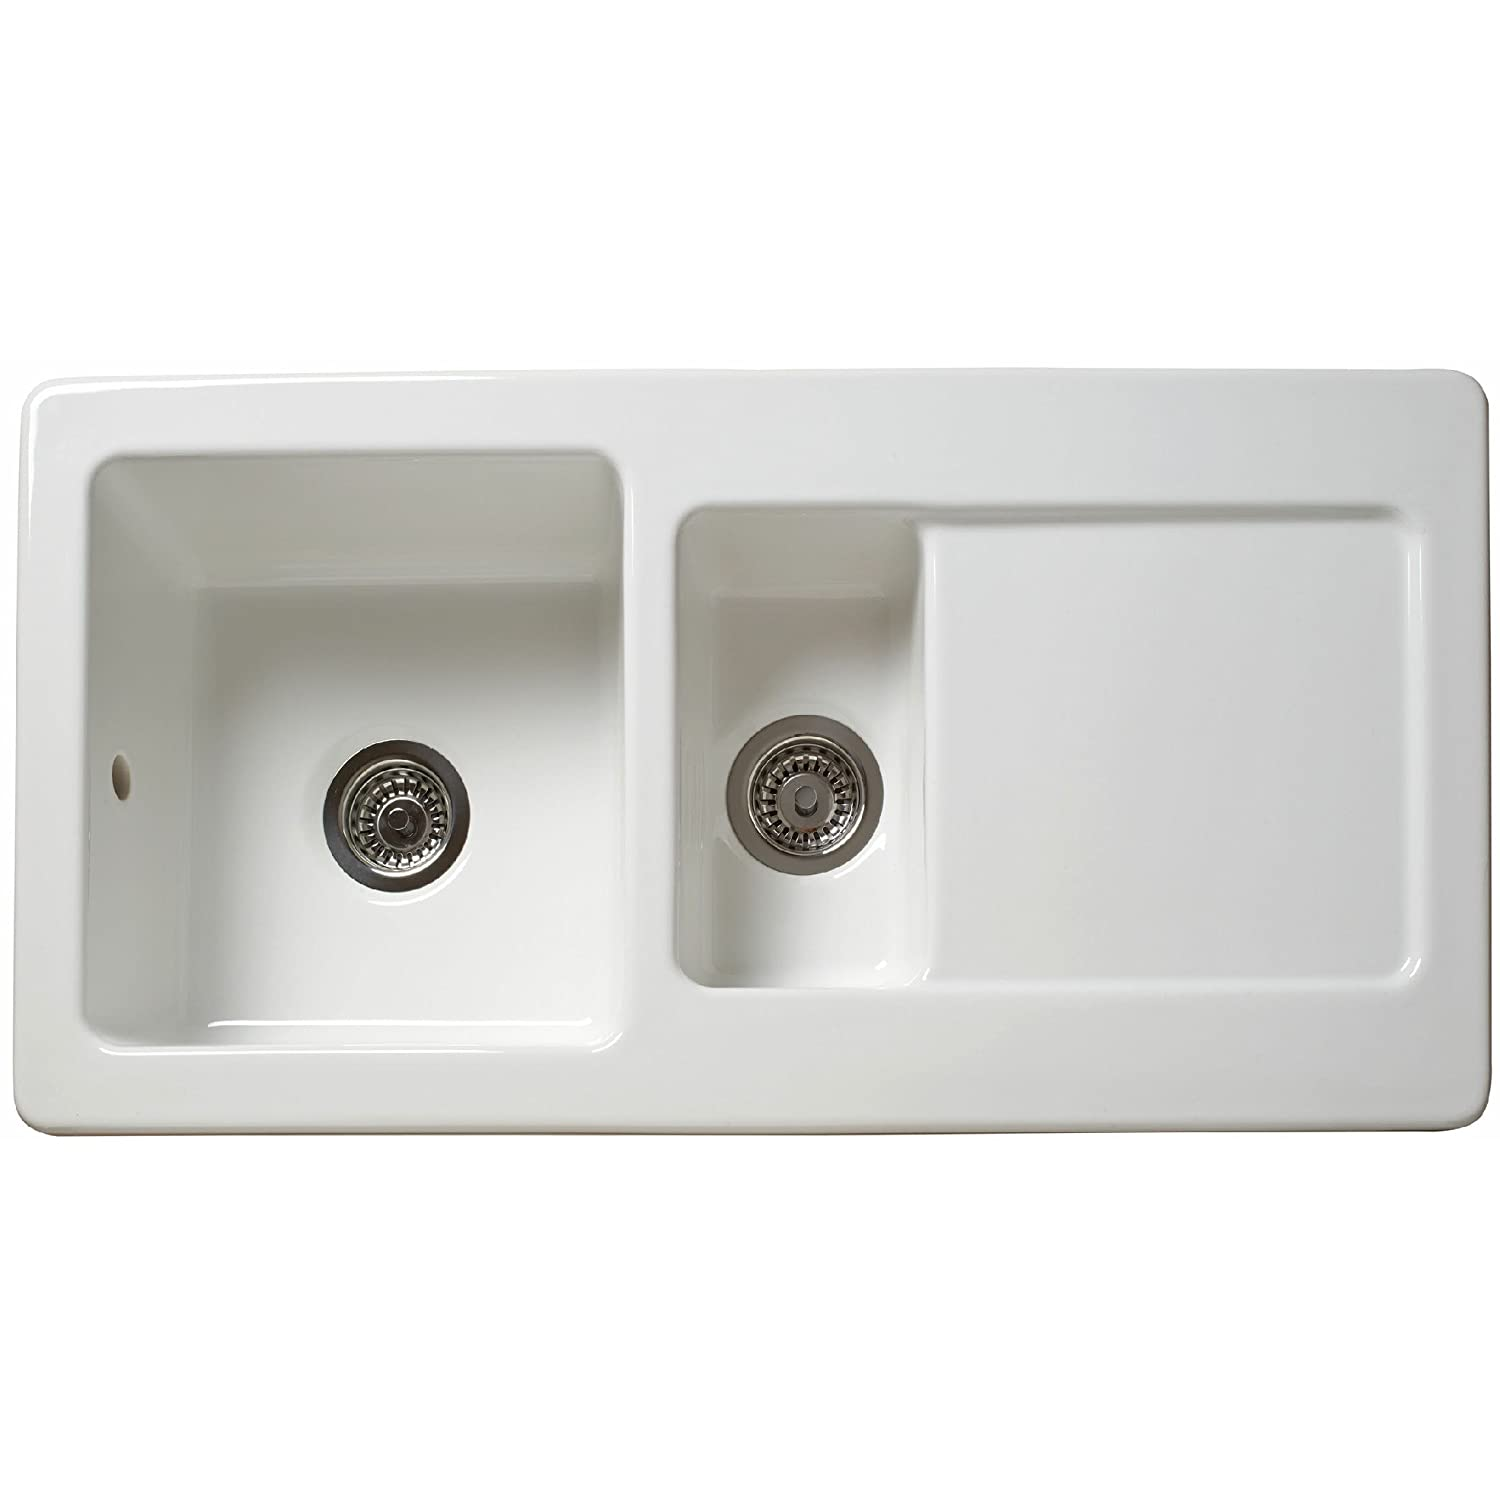 Reginox RL501CW 1.5 Bowl Reversible Inset Ceramic Sink White ...